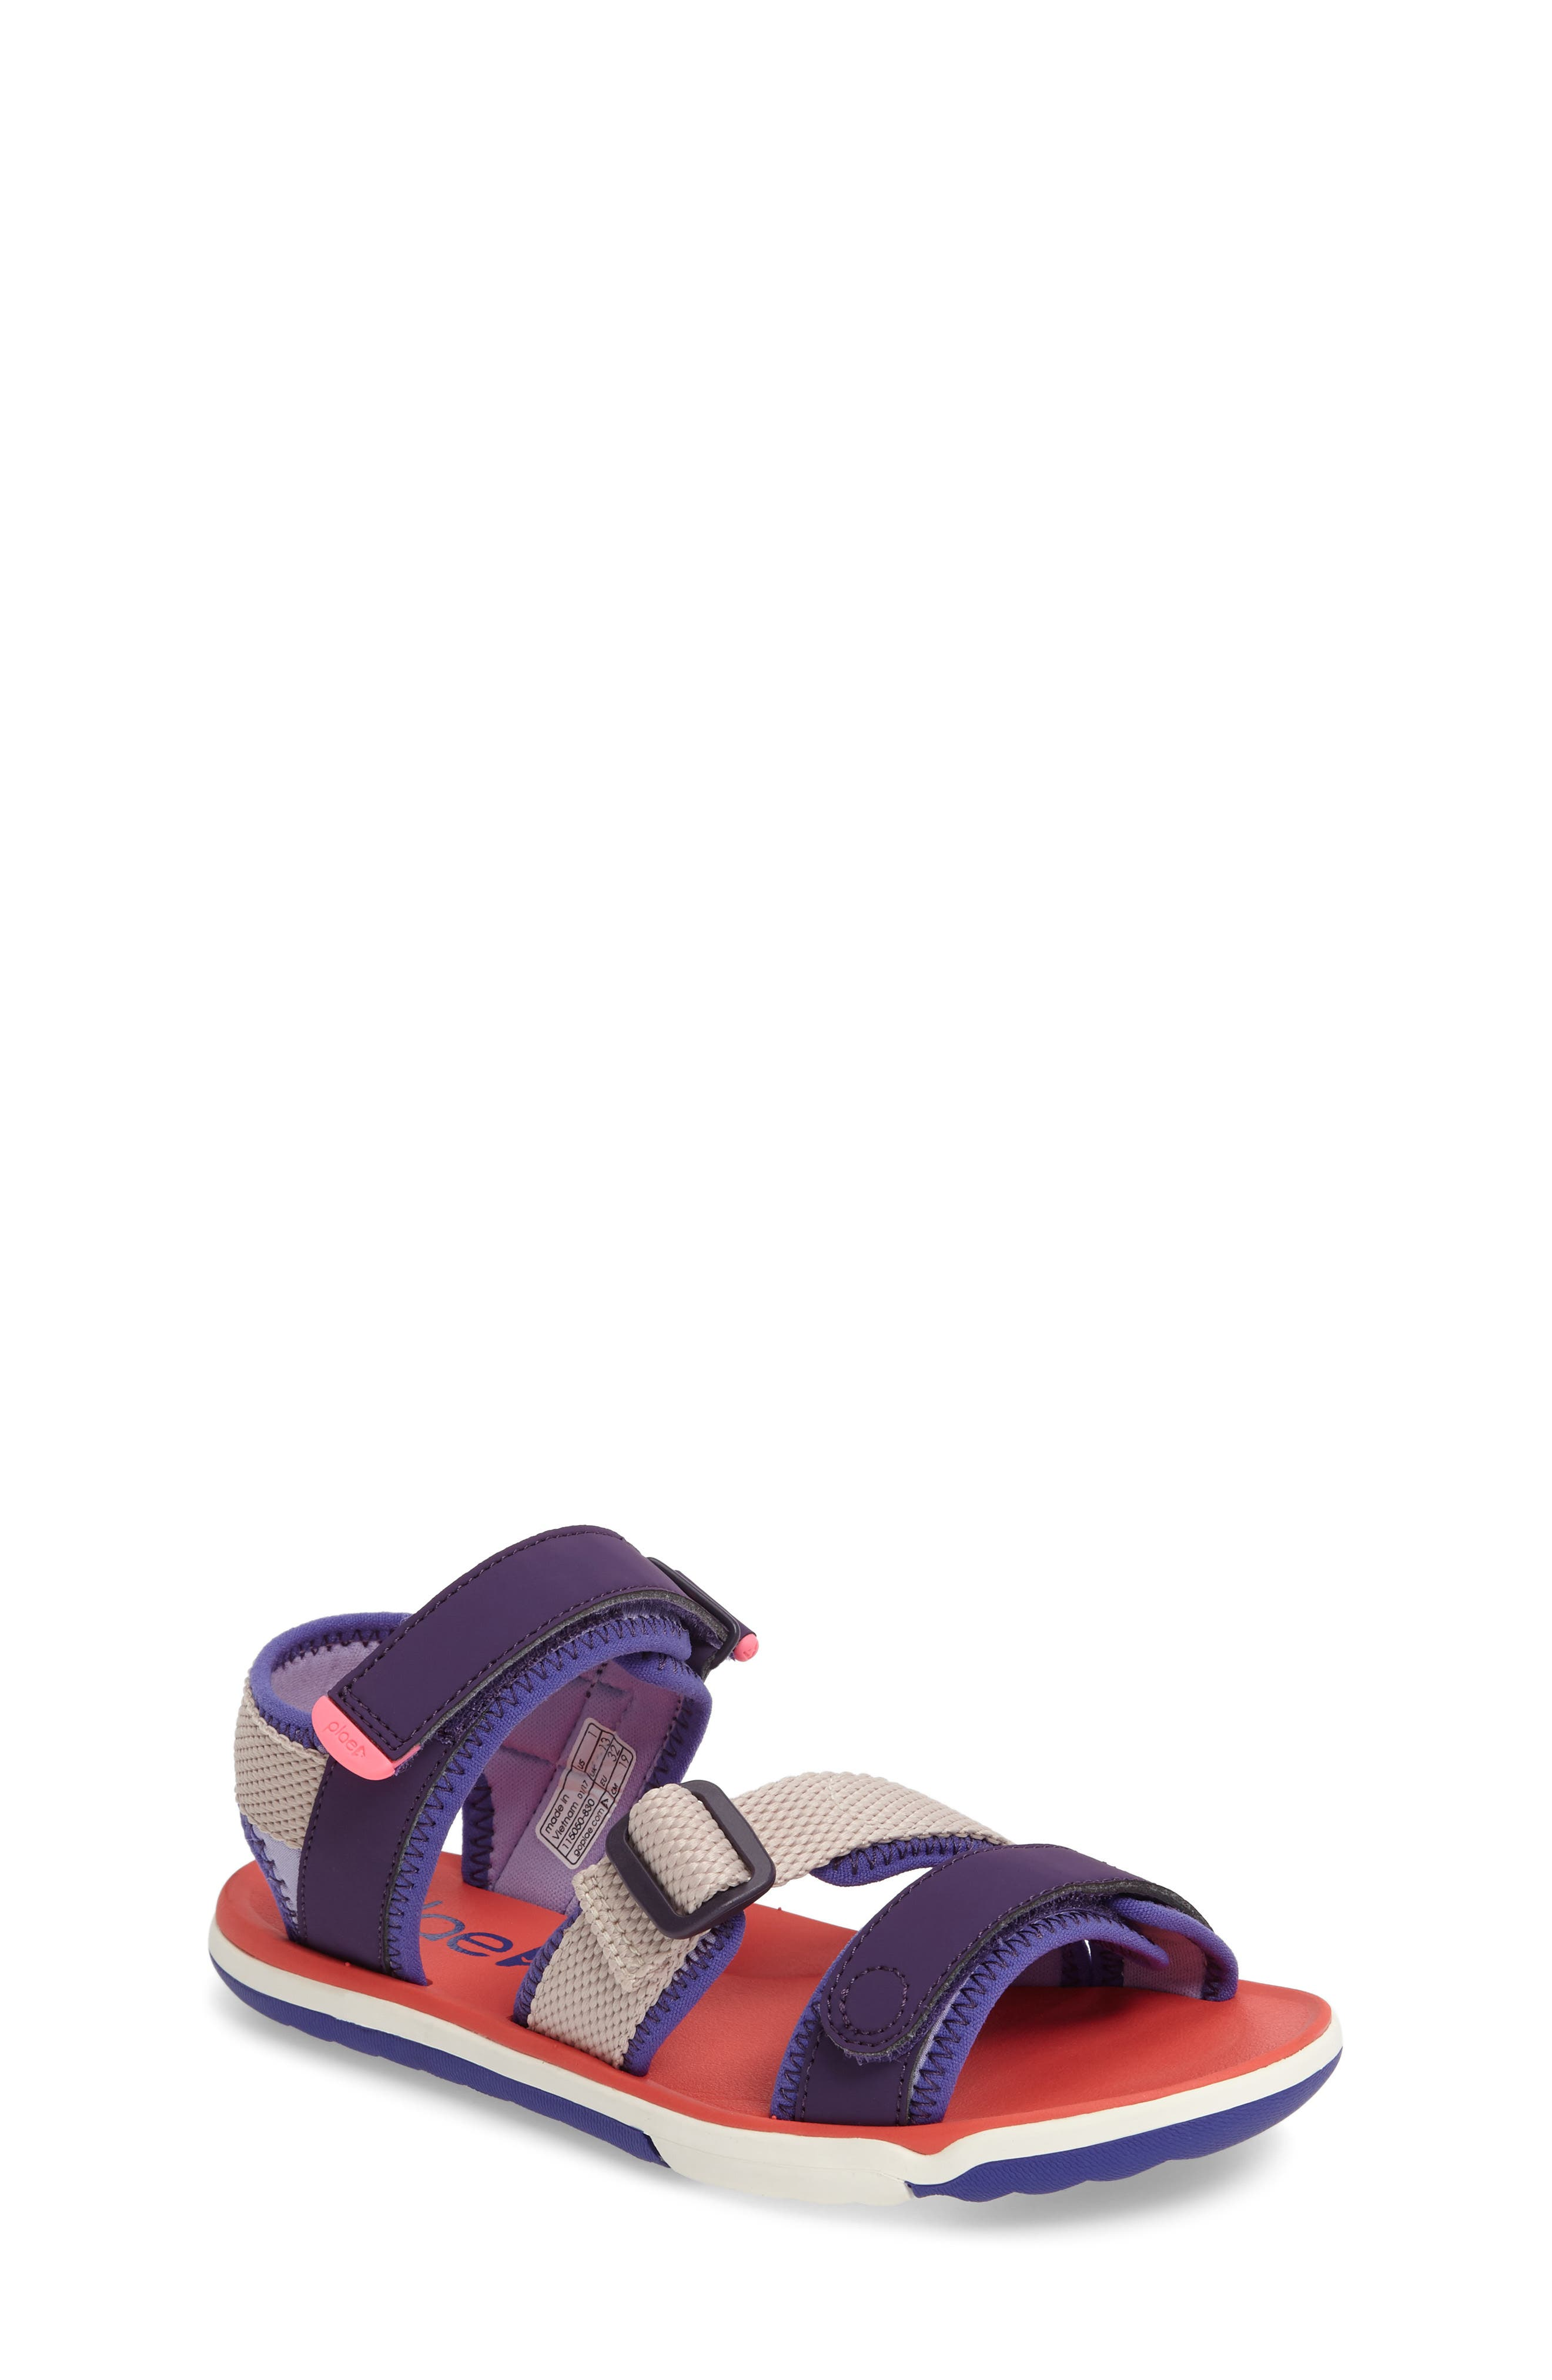 PLAE Wes Customizable Sandal